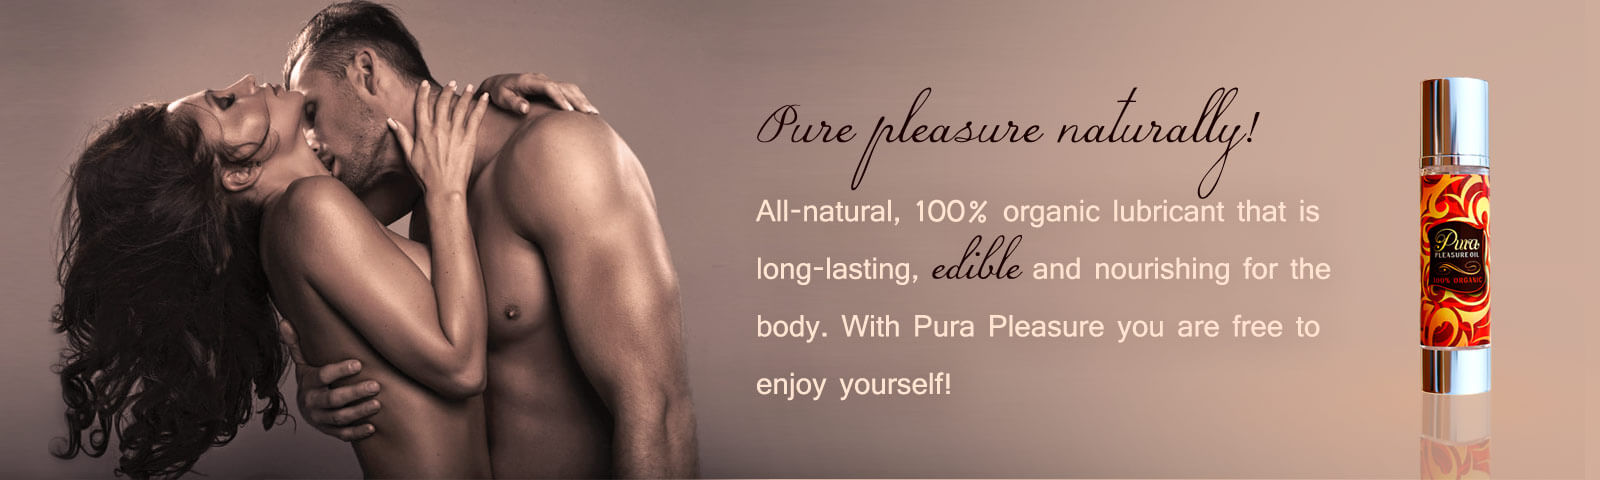 Pure pleasure naturally